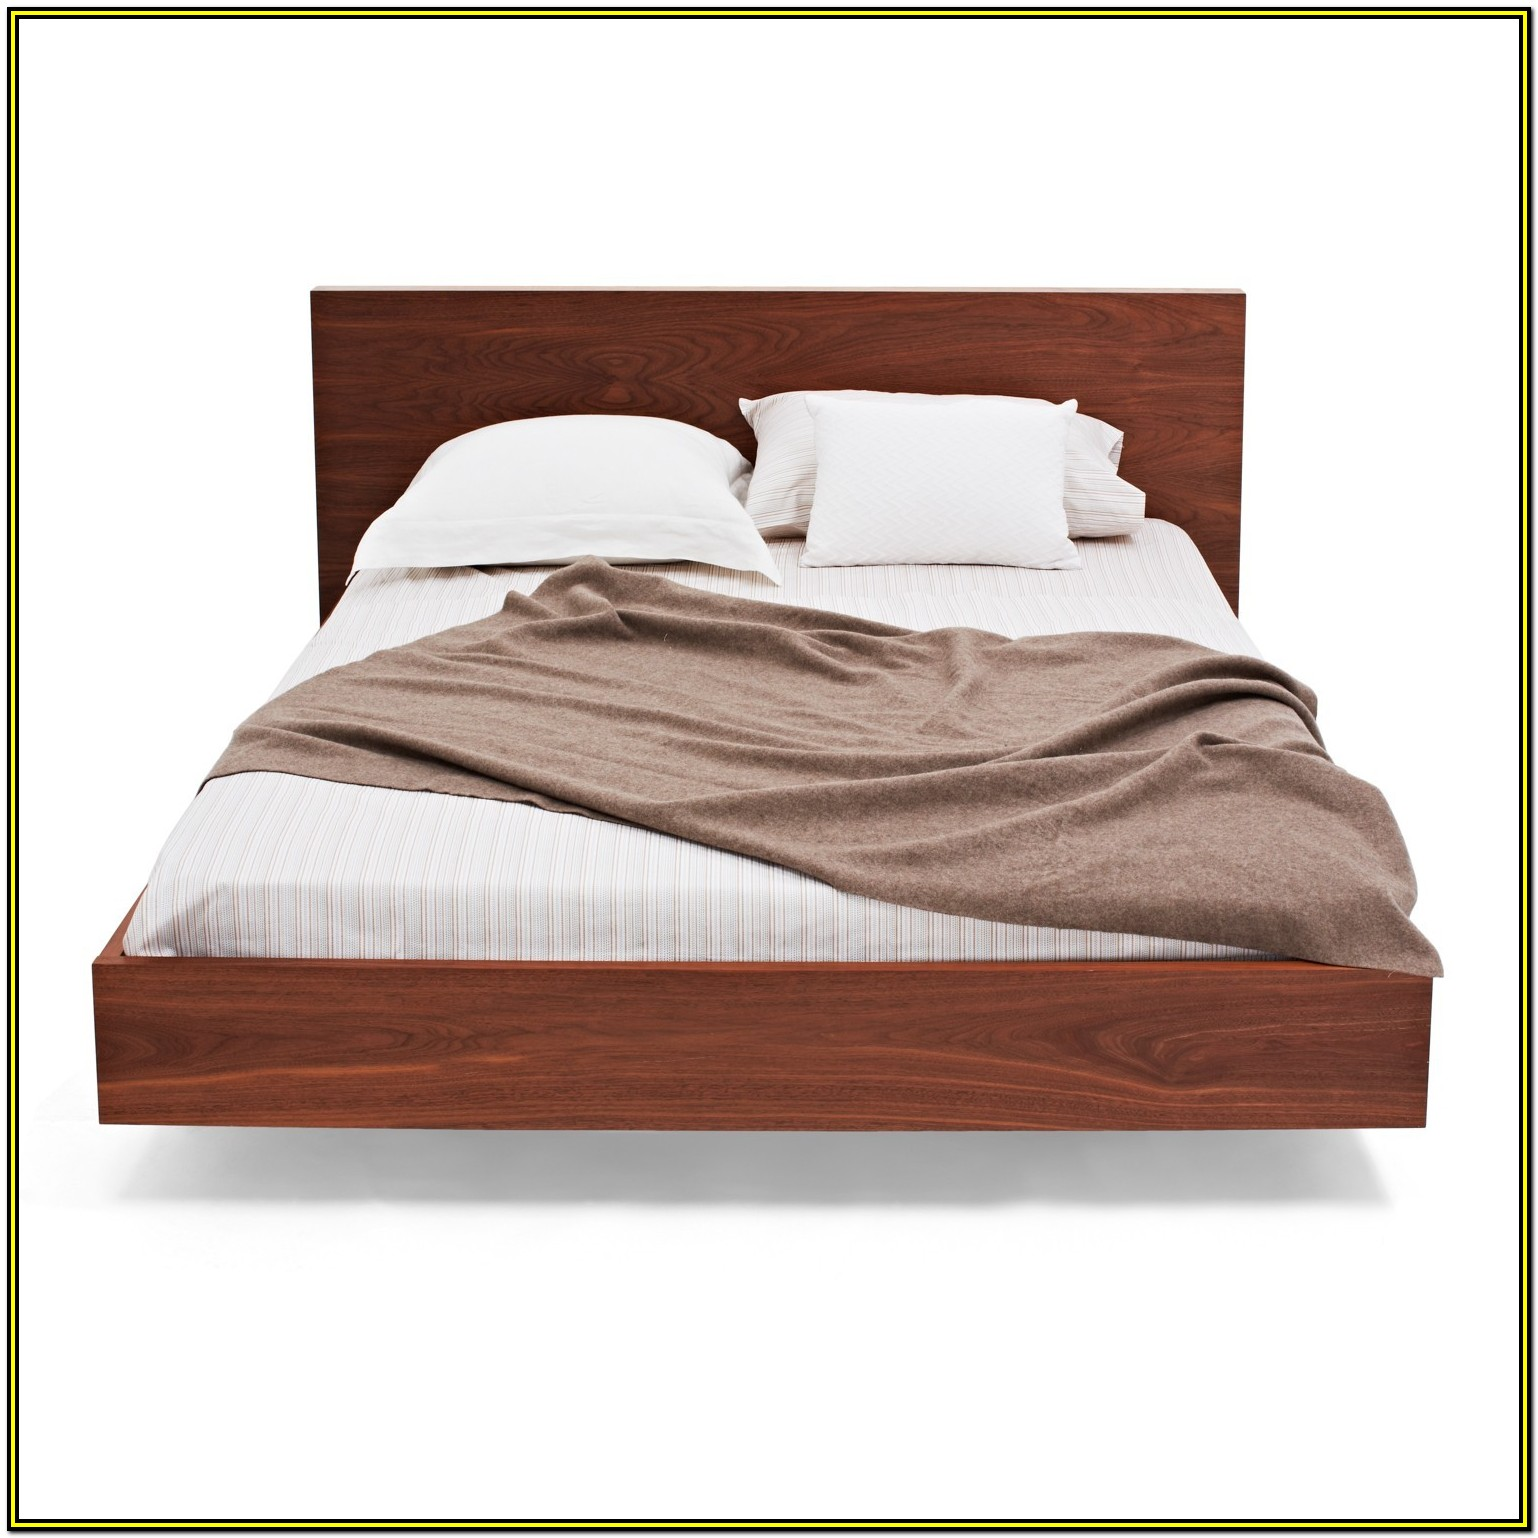 Solid Wood Queen Bed Frame With Headboard